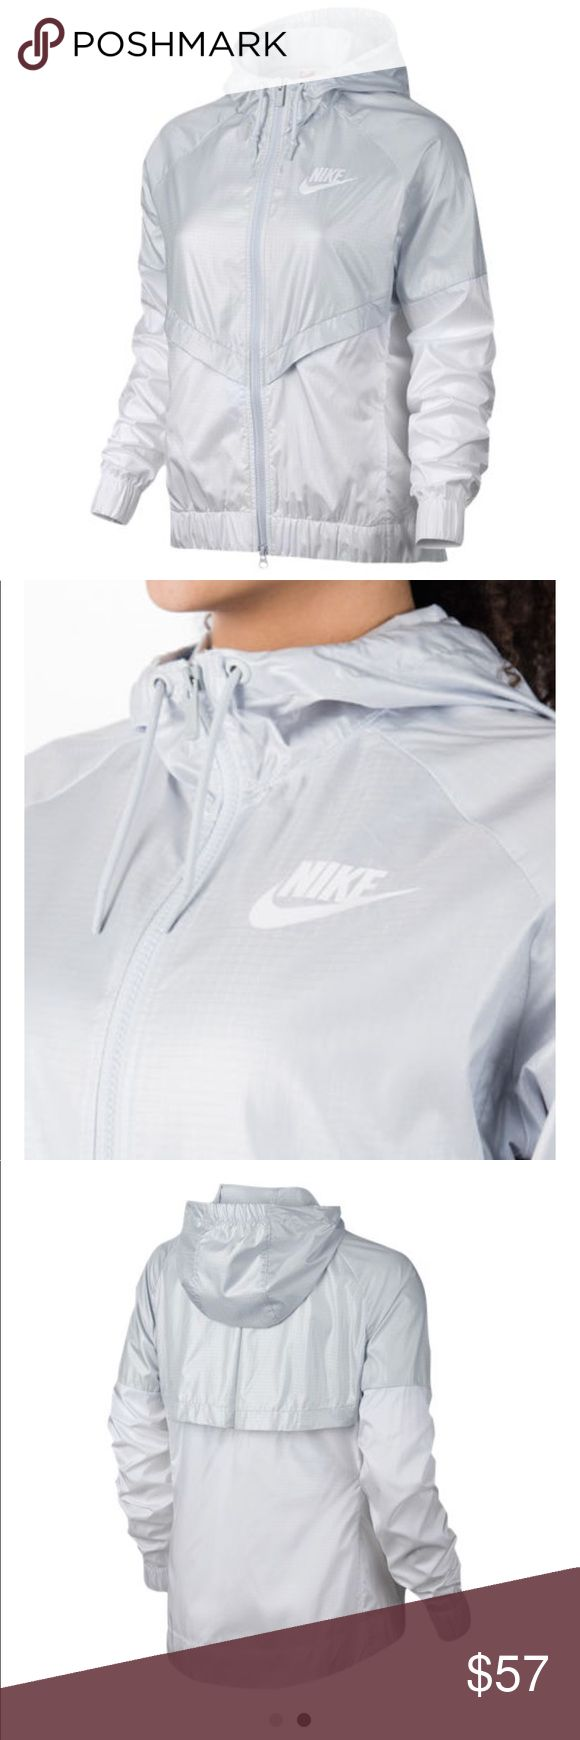 Nike The WindRunner Jacket, Pure Platinum/White Dropped hem provides extra coverage. 100% polyester. Imported. The Nike Sportswear Windrunner Women's Jacket elevates the original running layer for everyday with more coverage and a modern look. Dropped hem for more coverage Adjustable hood zips up to your chin for warmth Raglan sleeves allow you to move naturally Machine wash Fabric: Body: 100% polyester. Back mesh lining: 100% recycled polyester. Nike Jackets & Coats